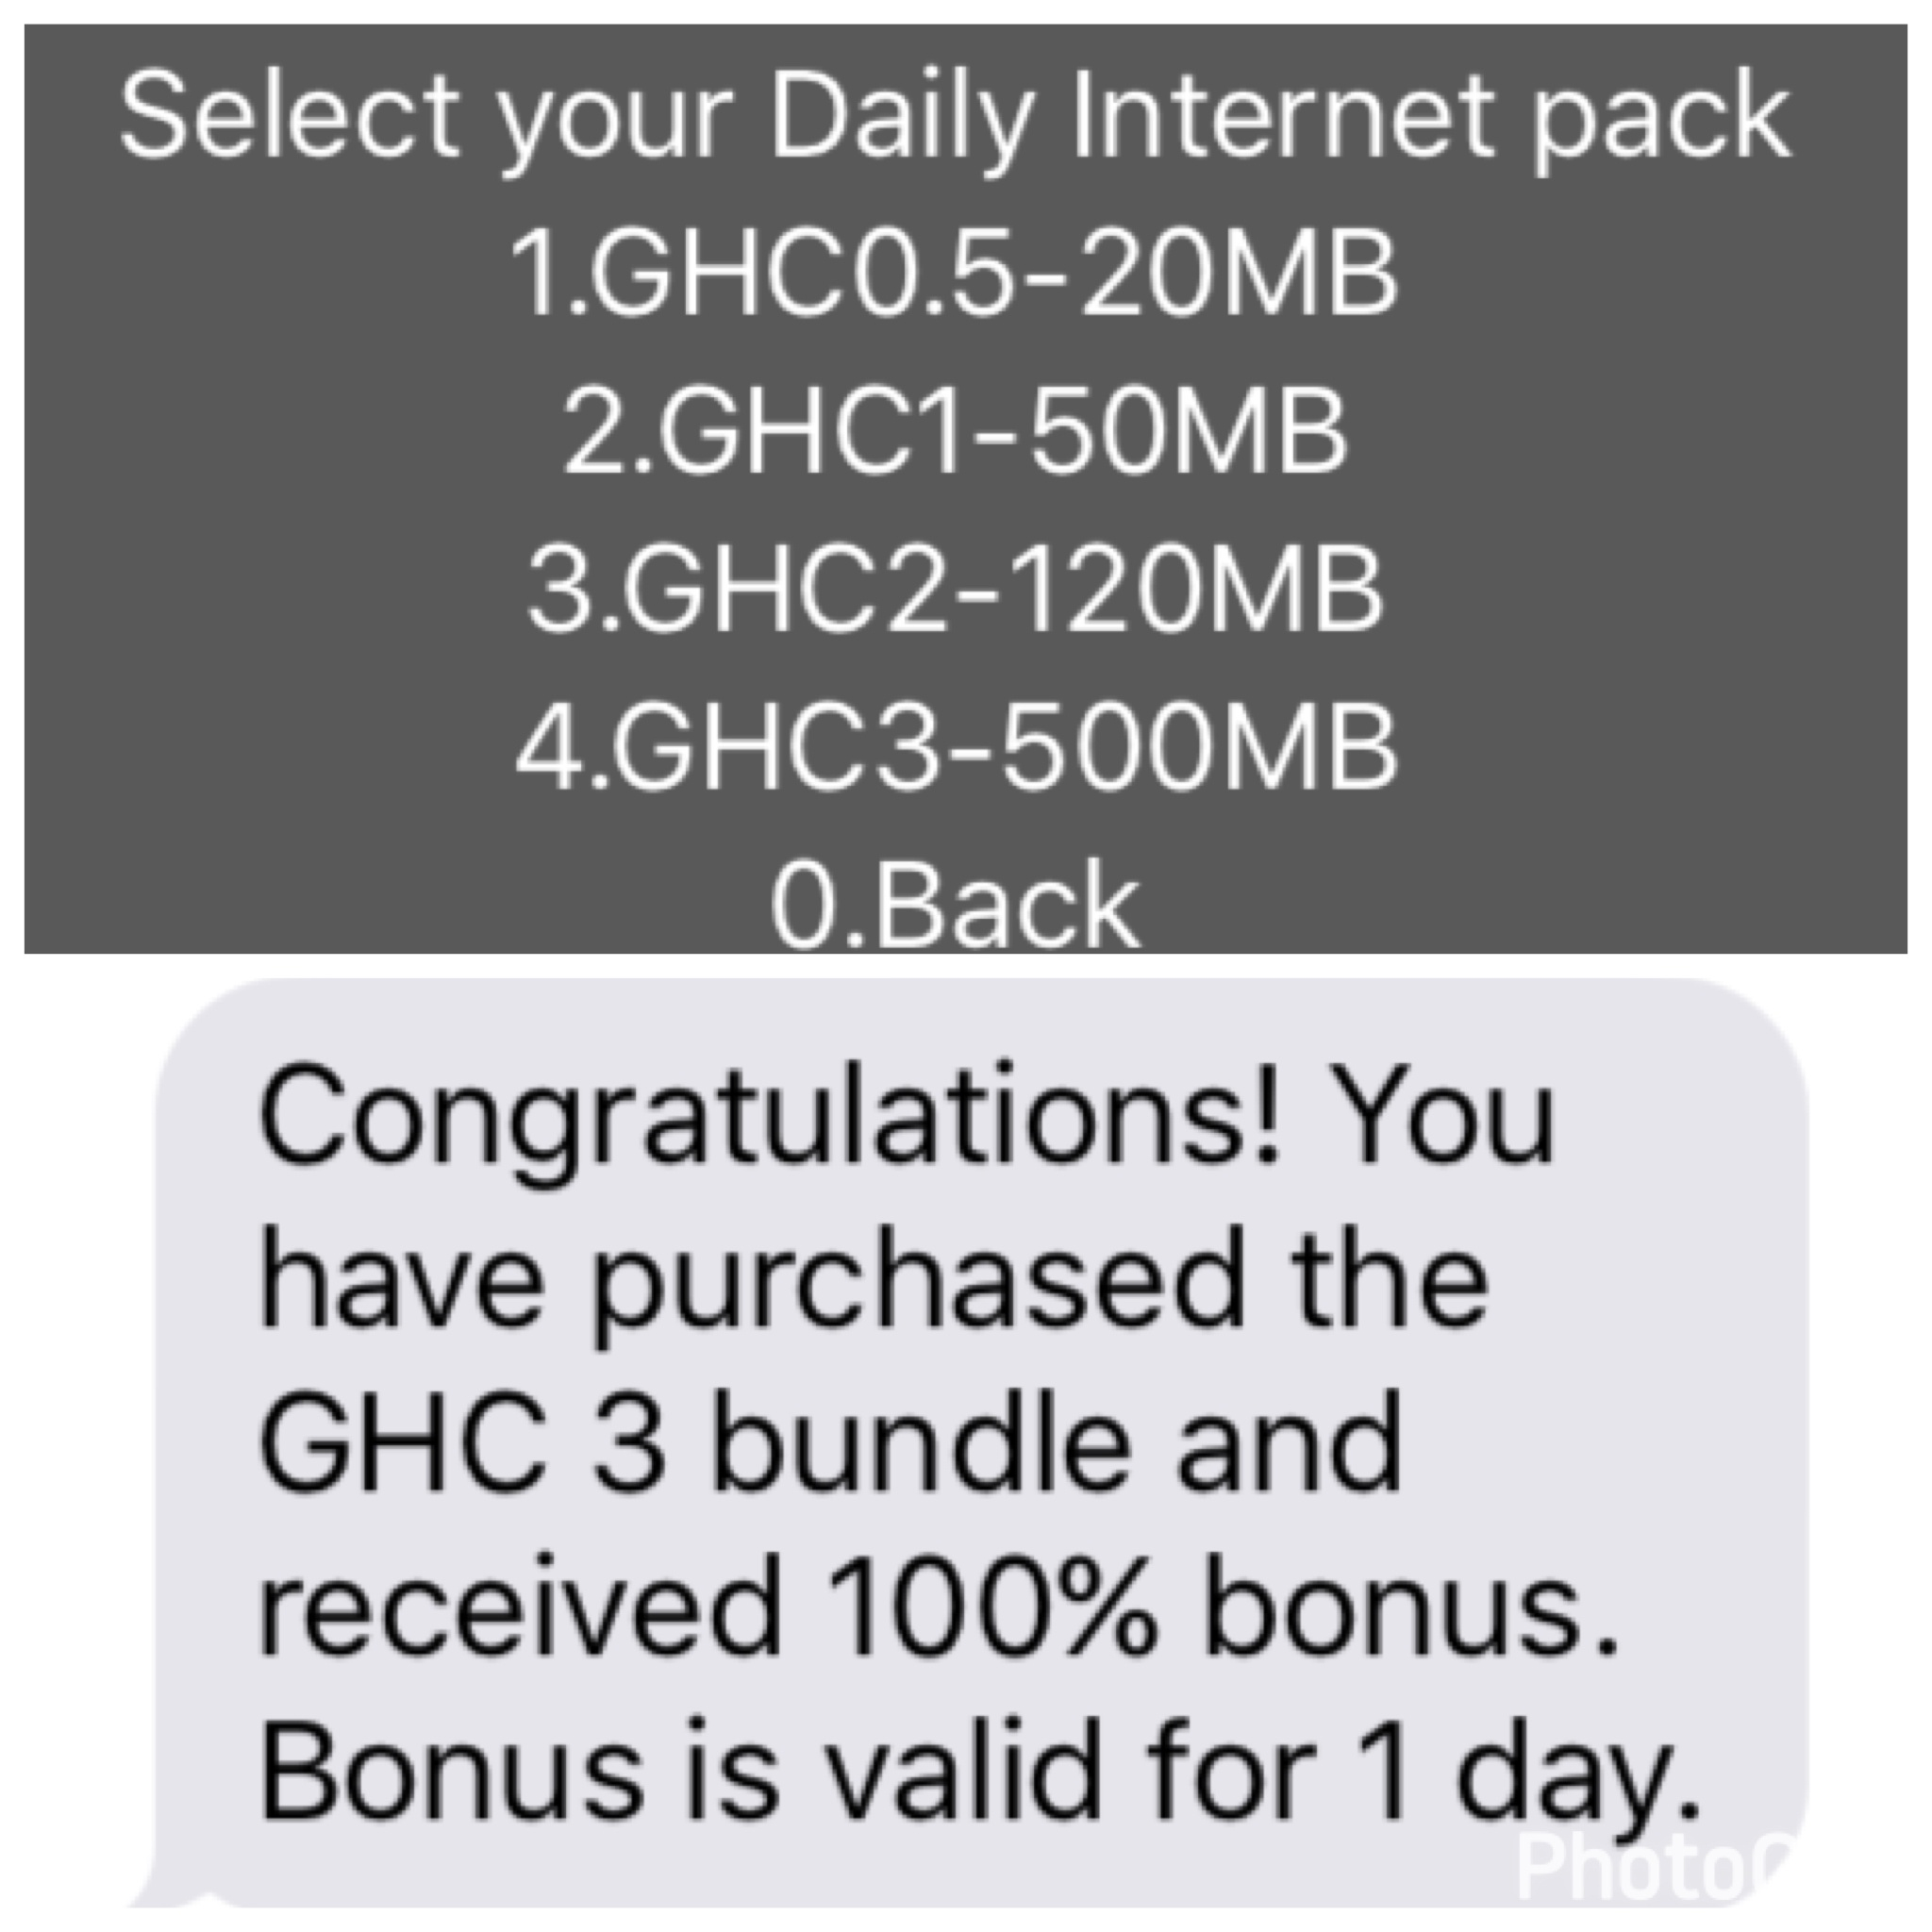 Best Data Bundles in Ghana - KhoPhi's Blog